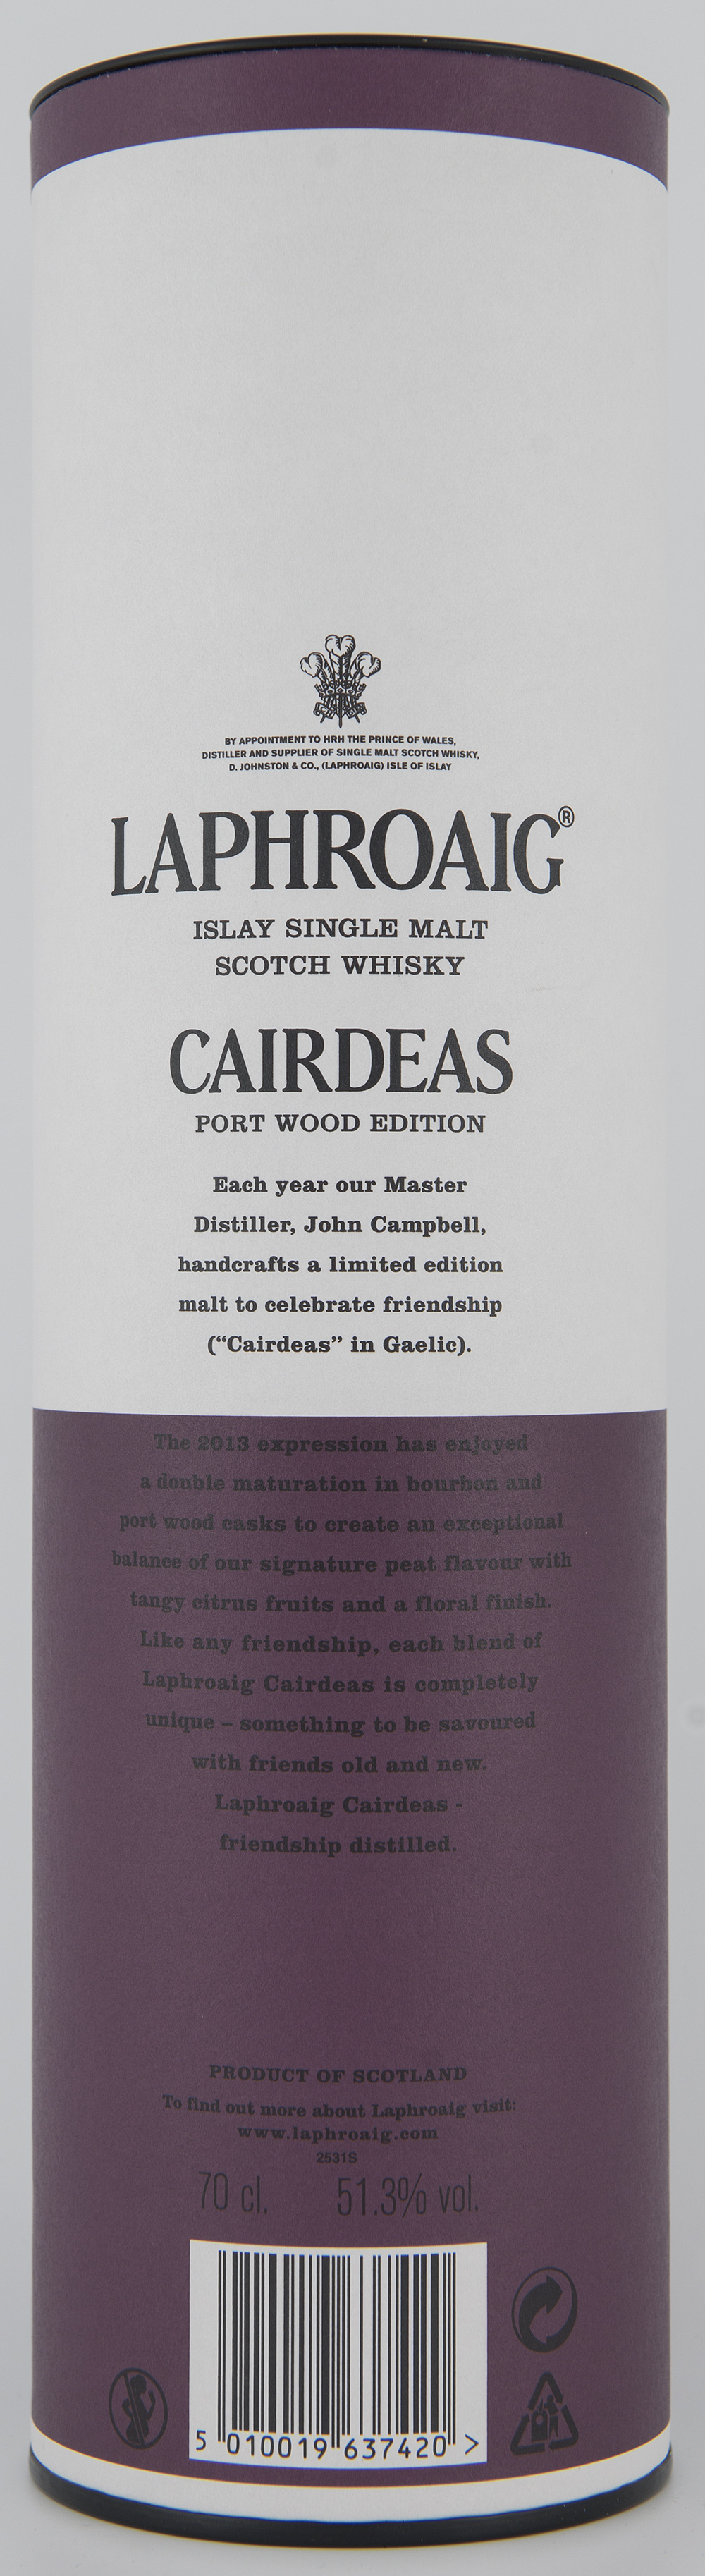 Billede: DSC_3217 Laphroaig Cairdeas Port Wood Edition (Feis Isle 2013) - tube back.jpg